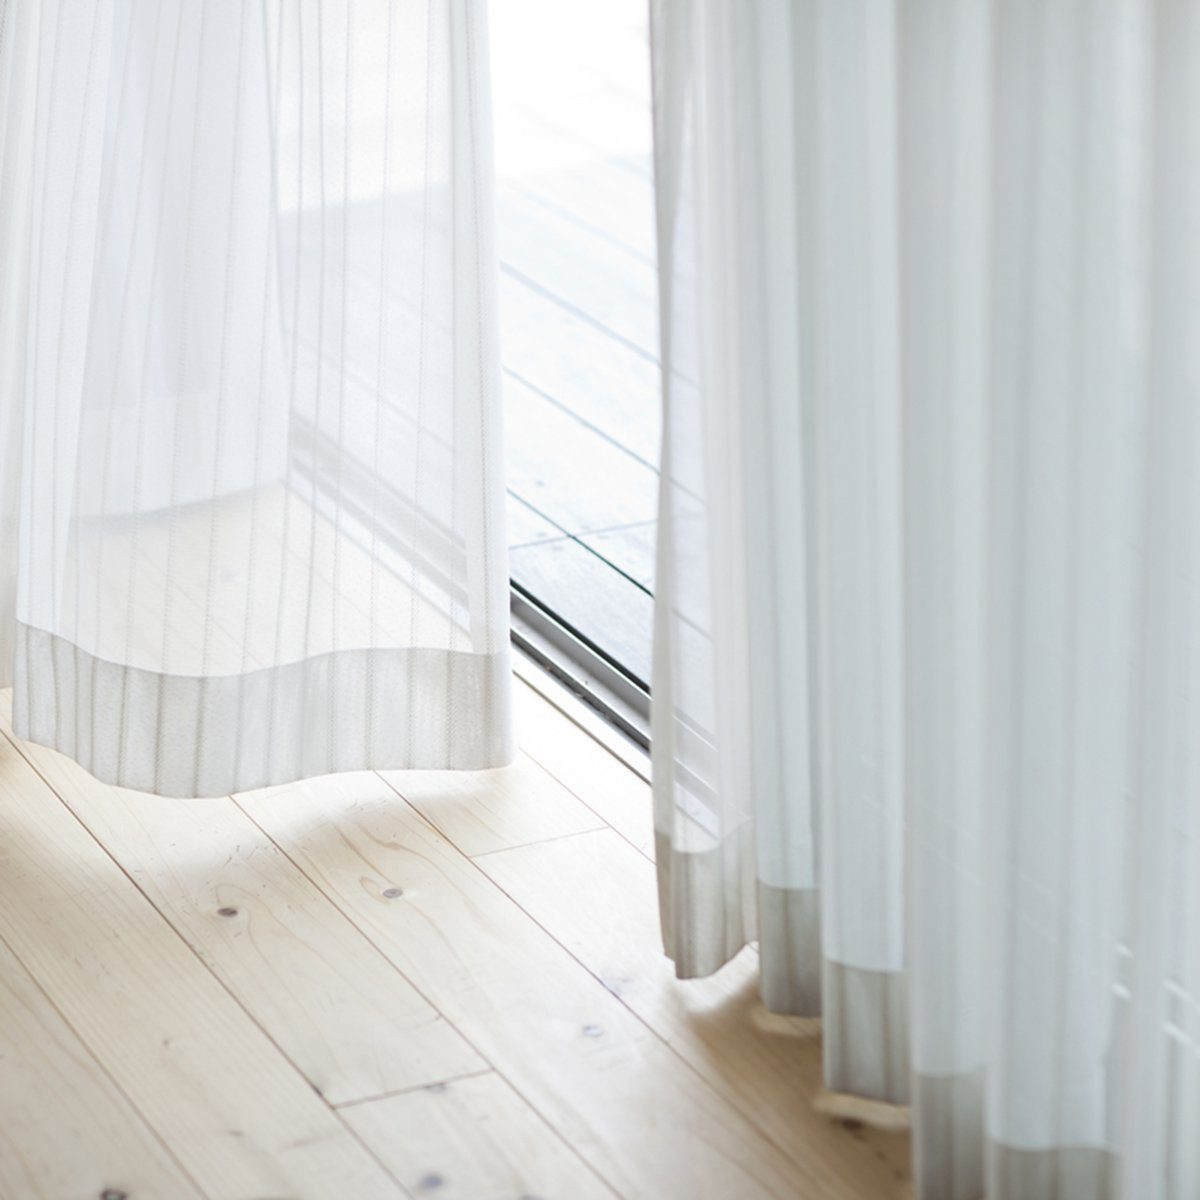 Lace curtain; Shutterstock ID 109605329